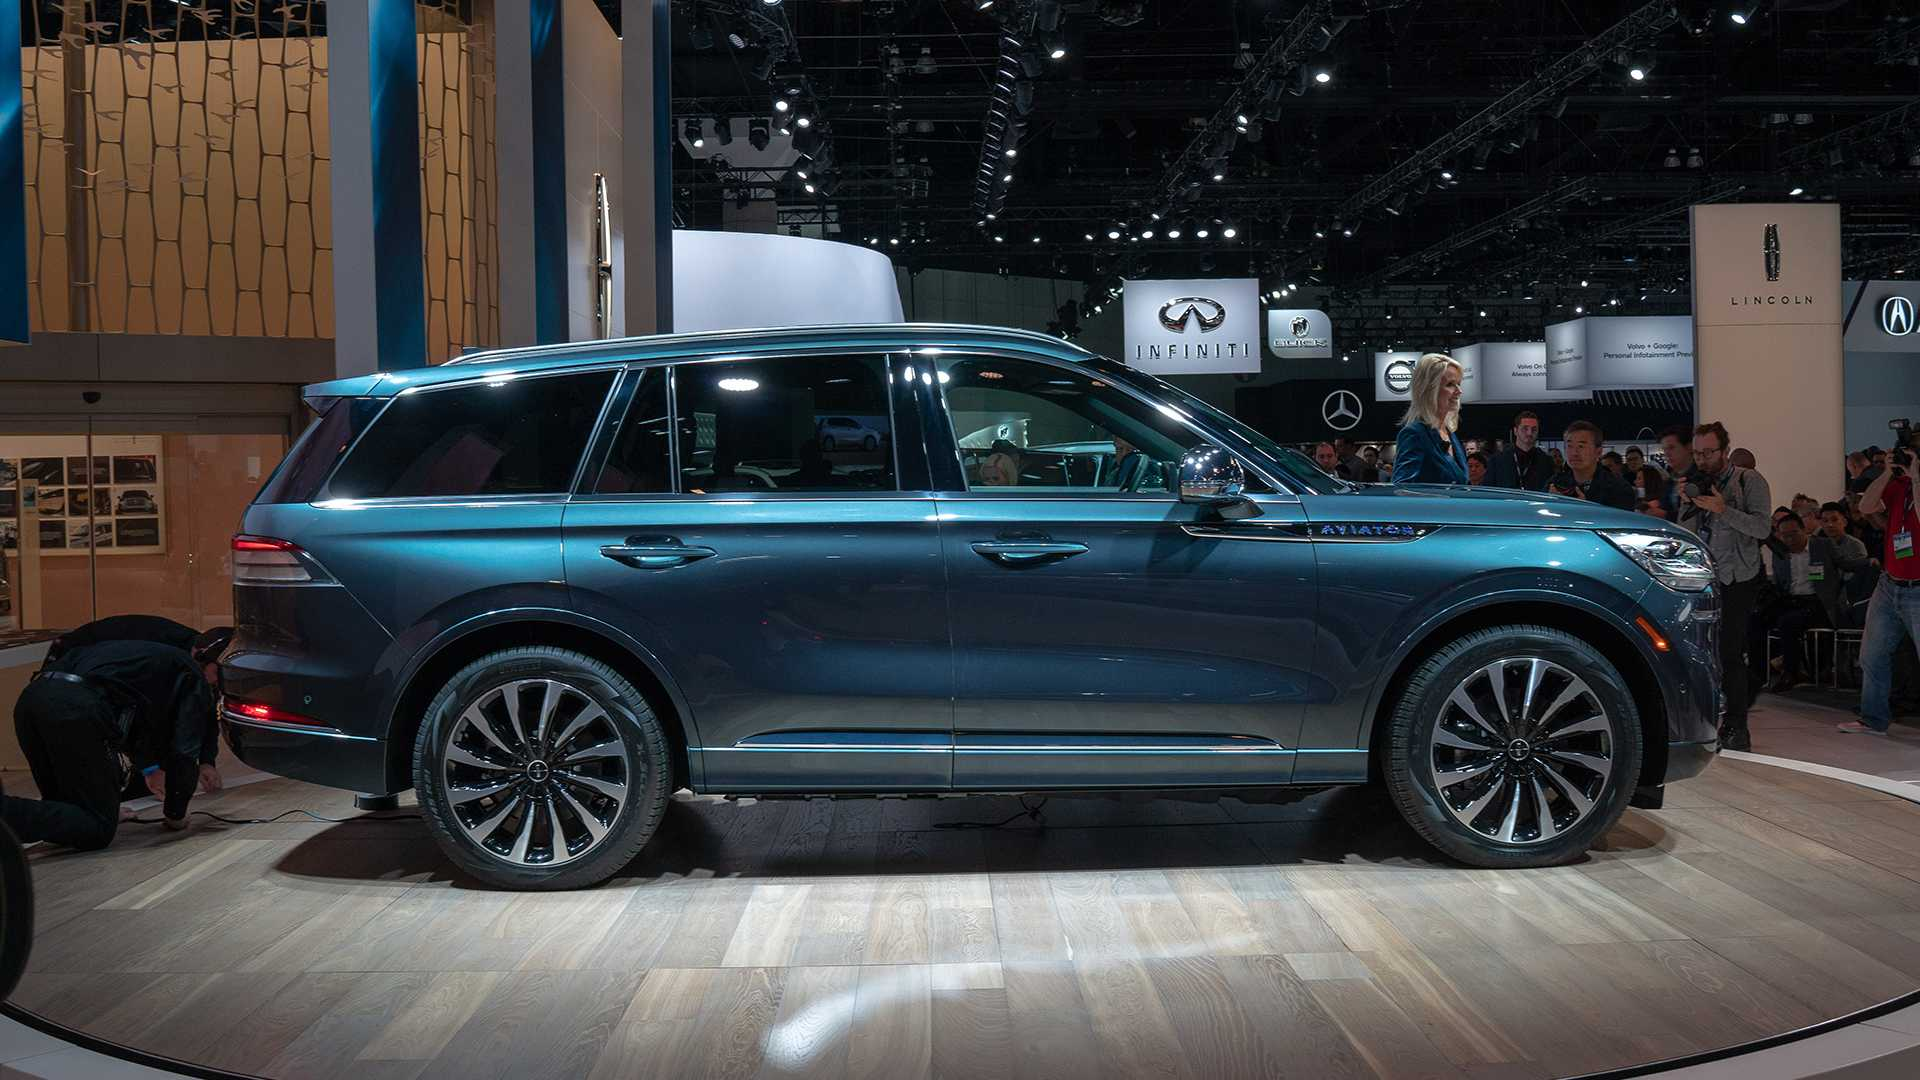 2020 Lincoln Aviator Price, Release Date, Interior >> 2020 Lincoln Aviator Lands In La With Potent Plug In Power Update